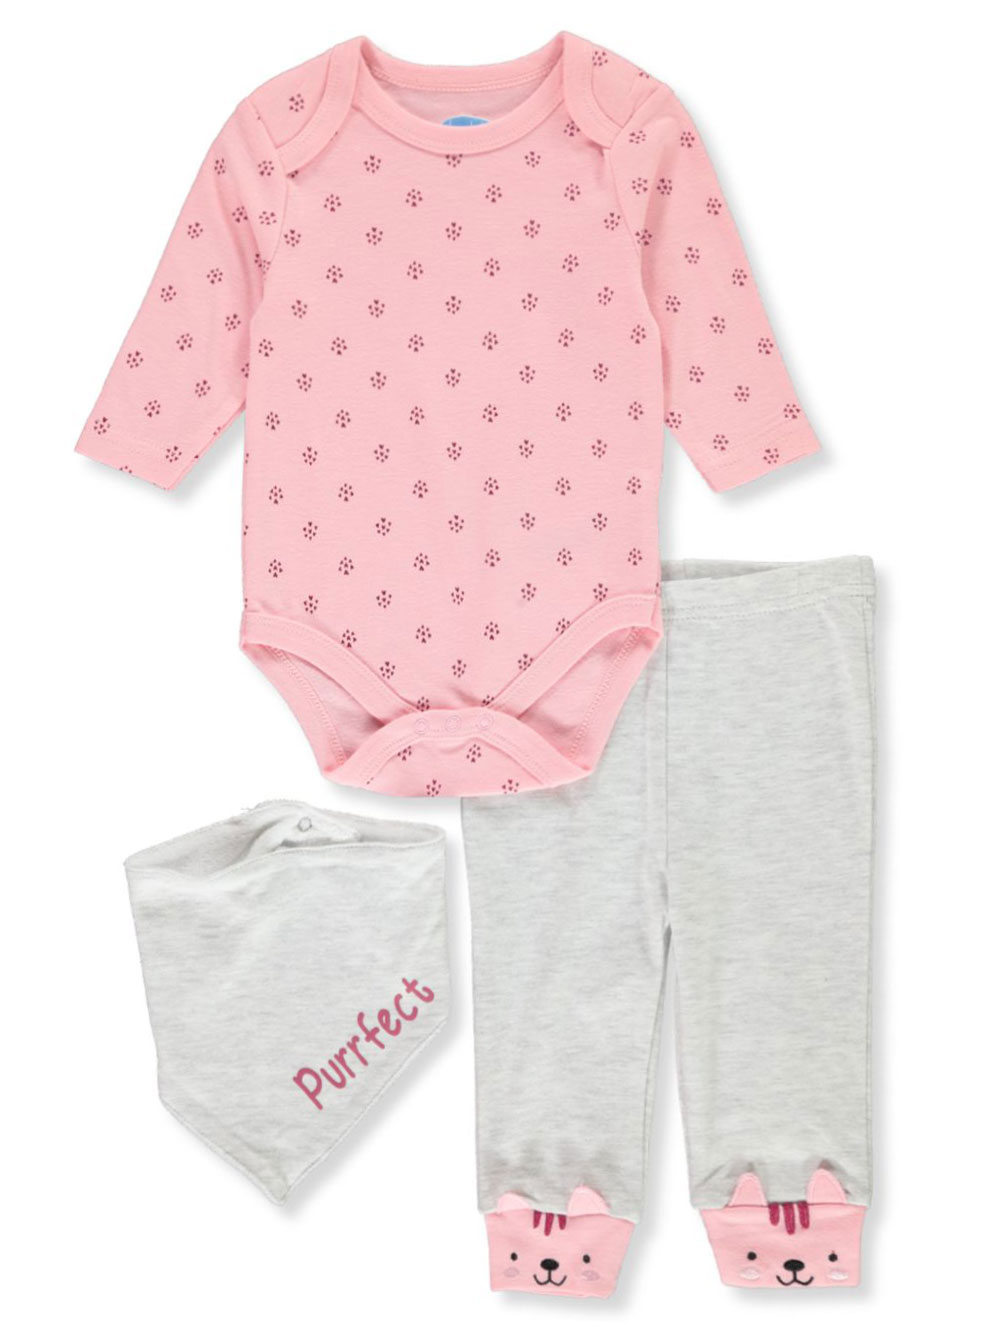 Purrfect 3-Piece Layette Set